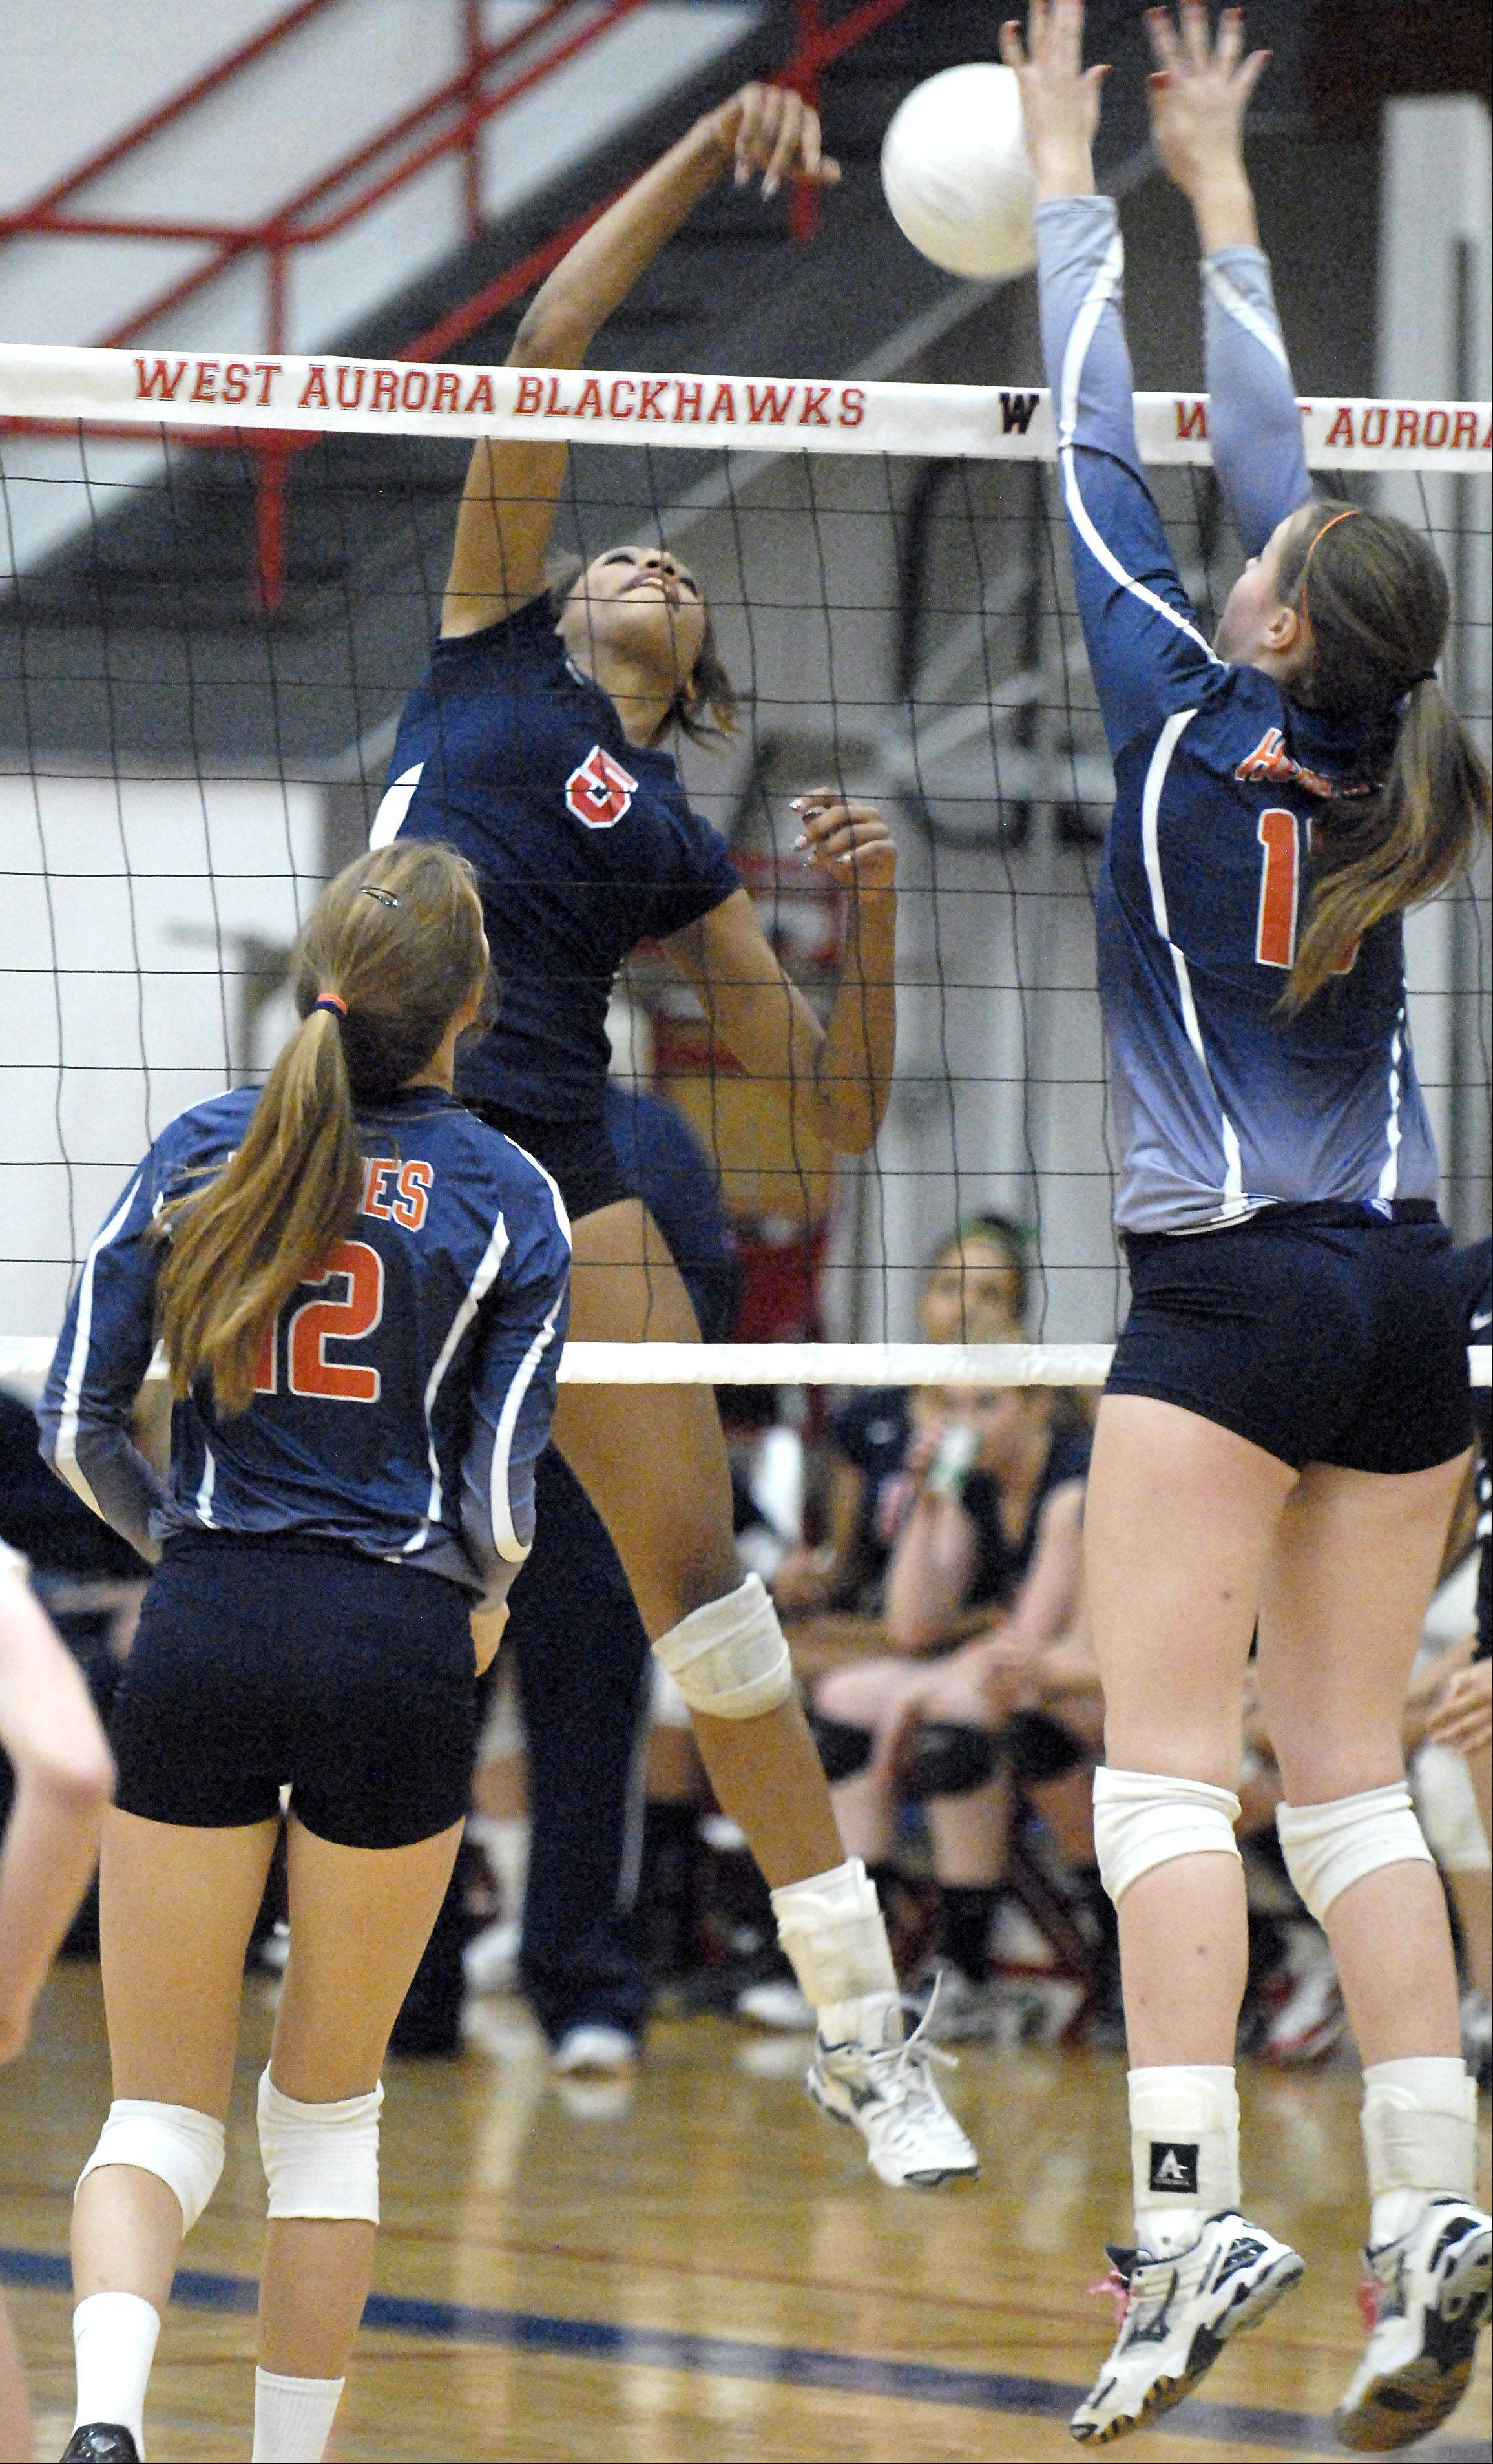 West Aurora's Nerissa Vogy's spike is met by a block by Naperville North's Maddi Henry in the first game on Thursday, October 11.